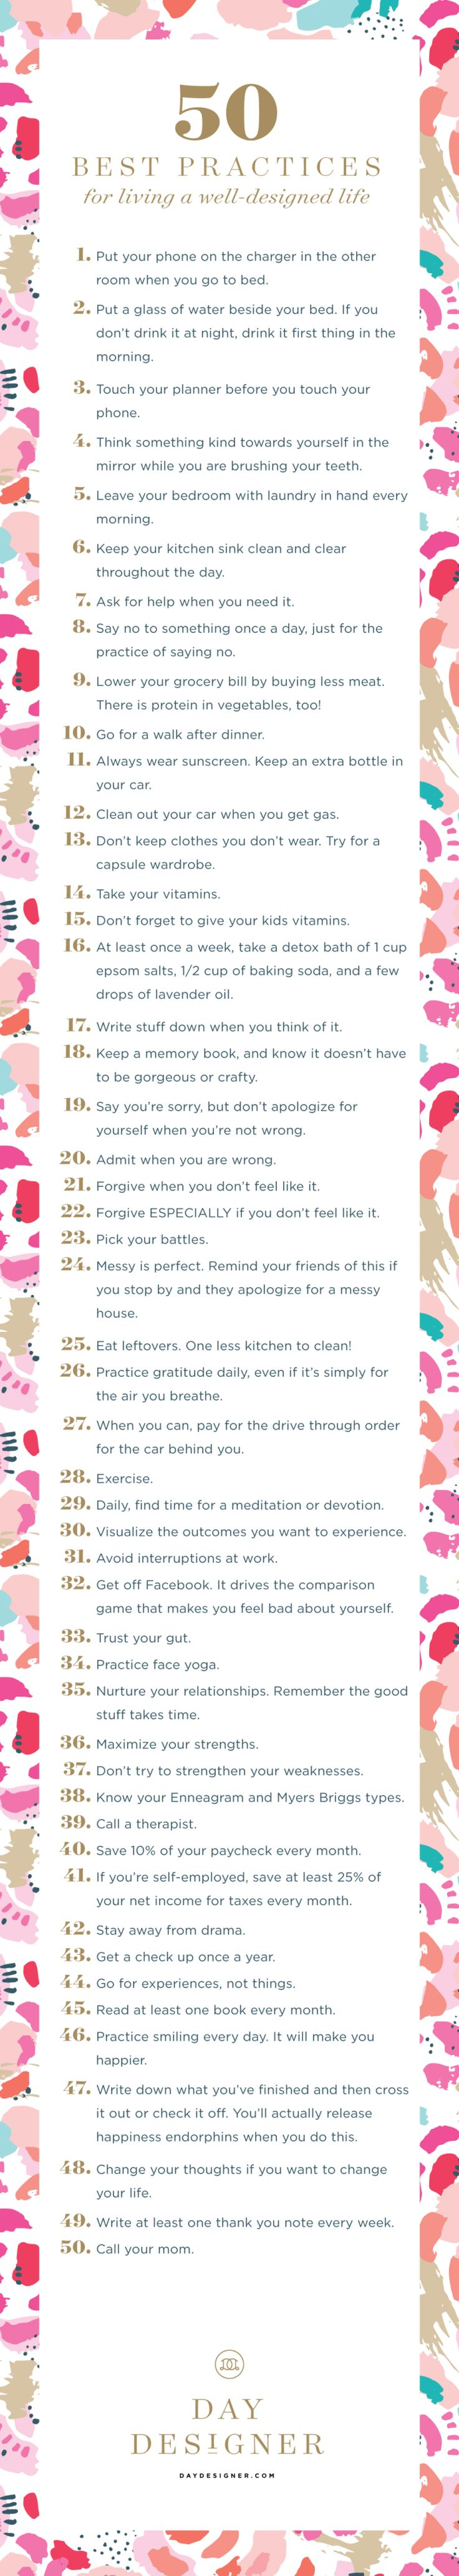 50 Best Practices for living a Well-Designed Life | Day Designer